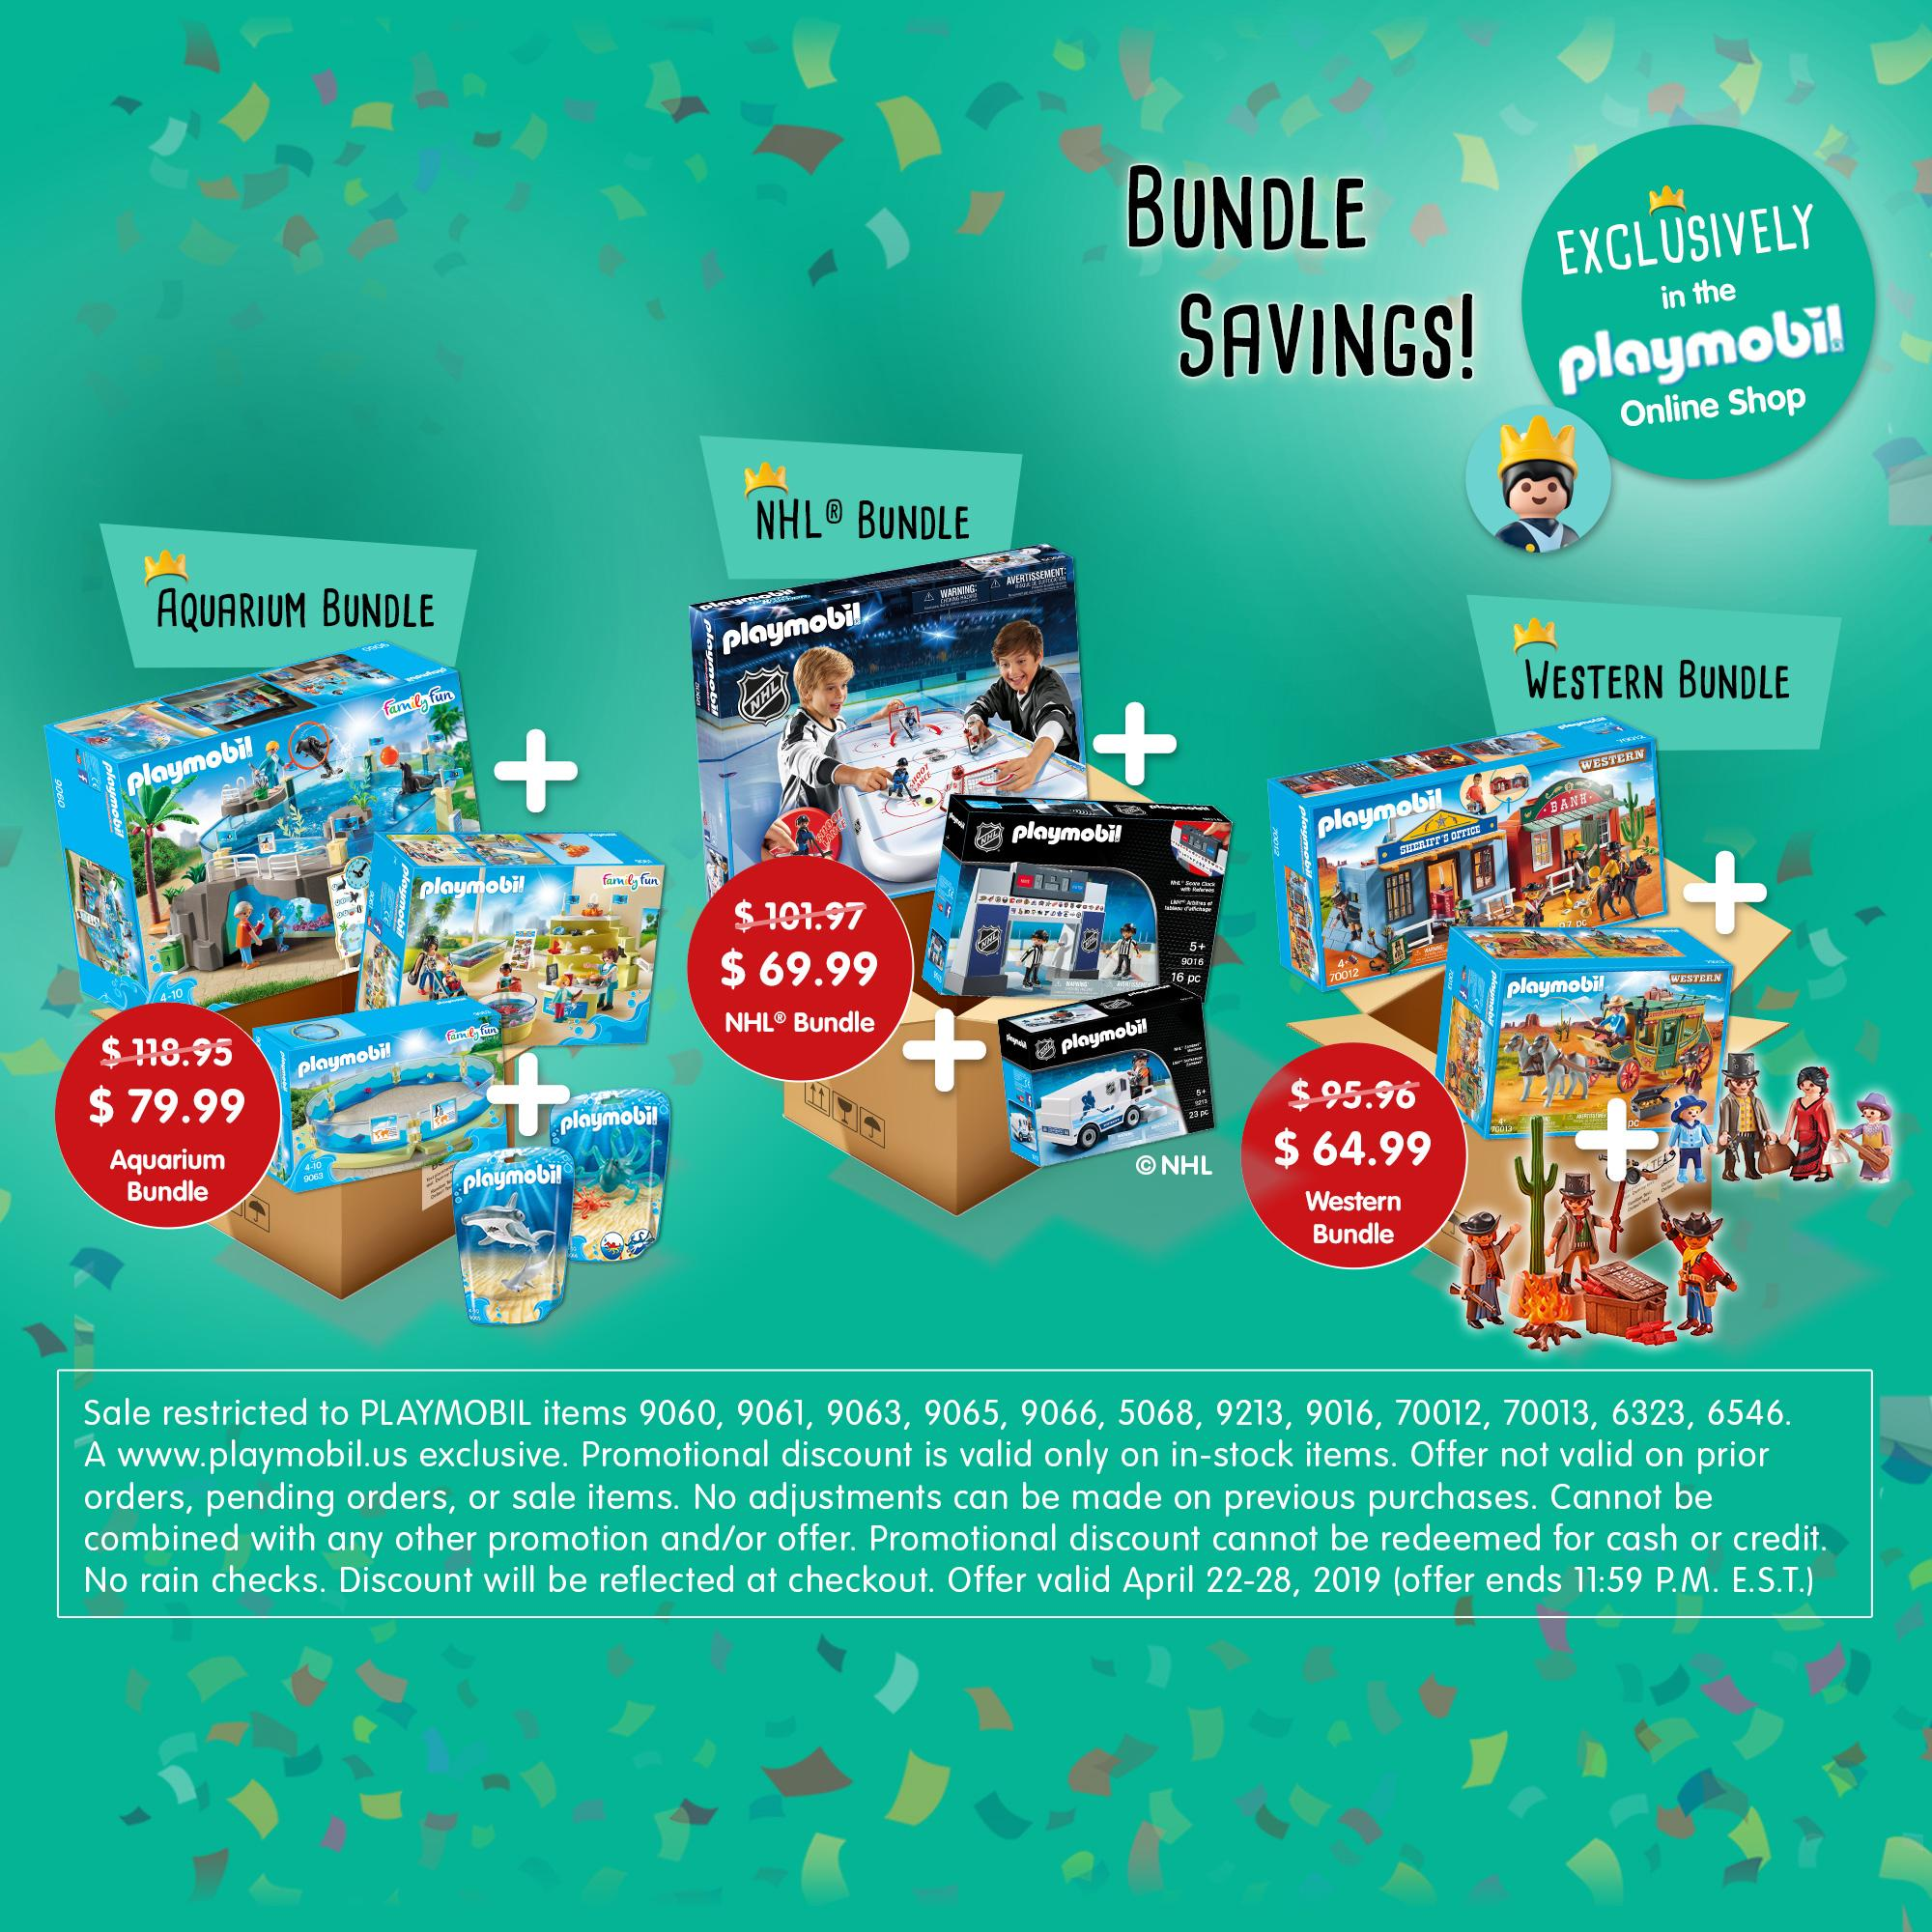 SHOP_BUNDLES_2019_04_US_2X2_mobile